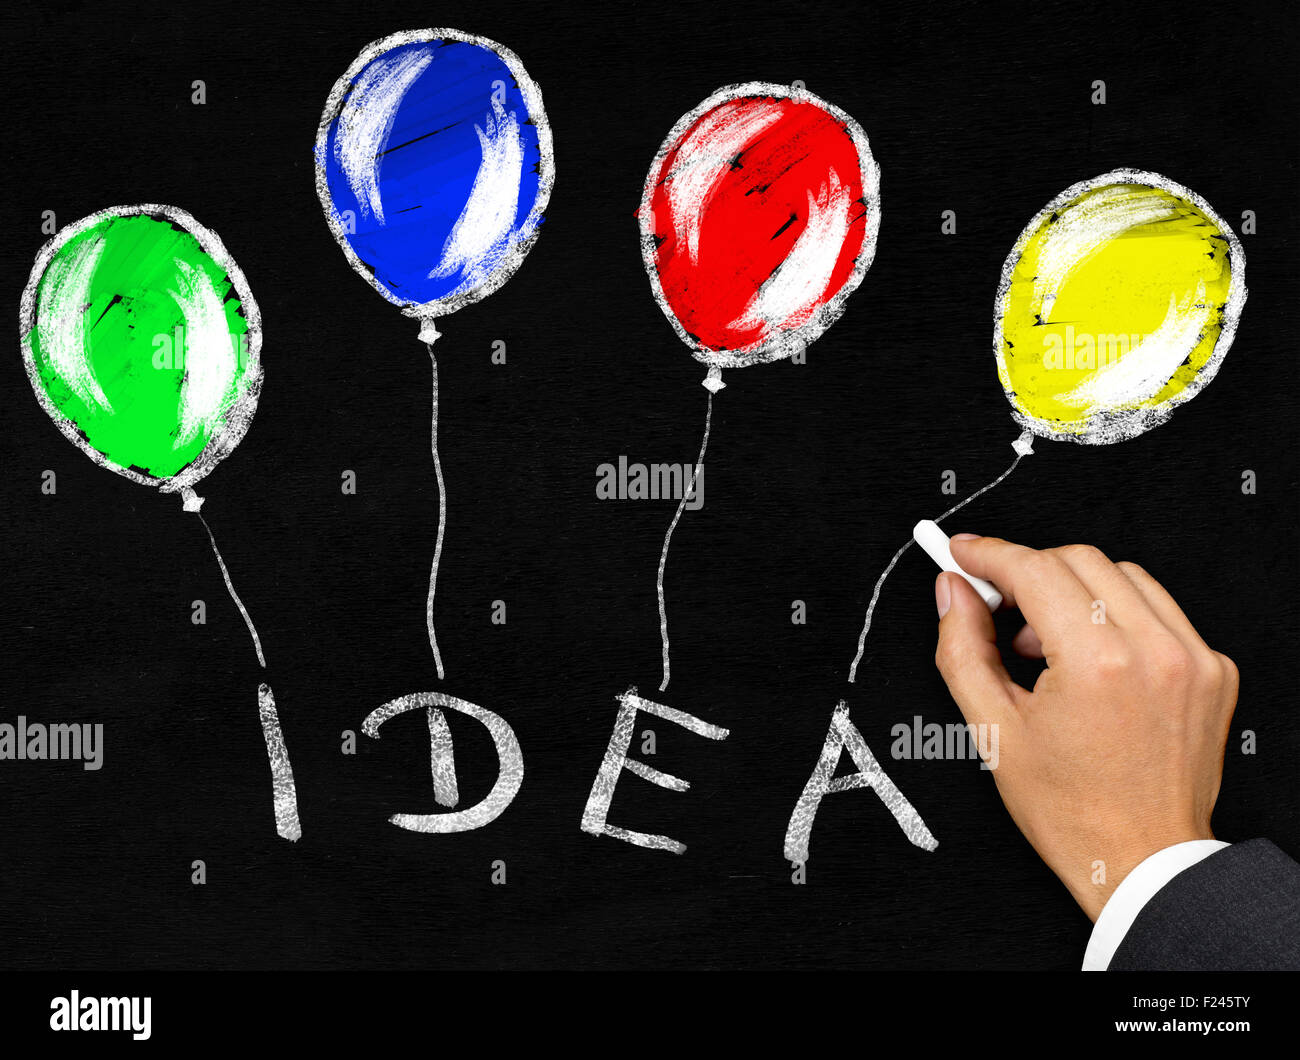 Man writing the word 'Idea' with balloons attached to it with chalk on blackboard background - Stock Image